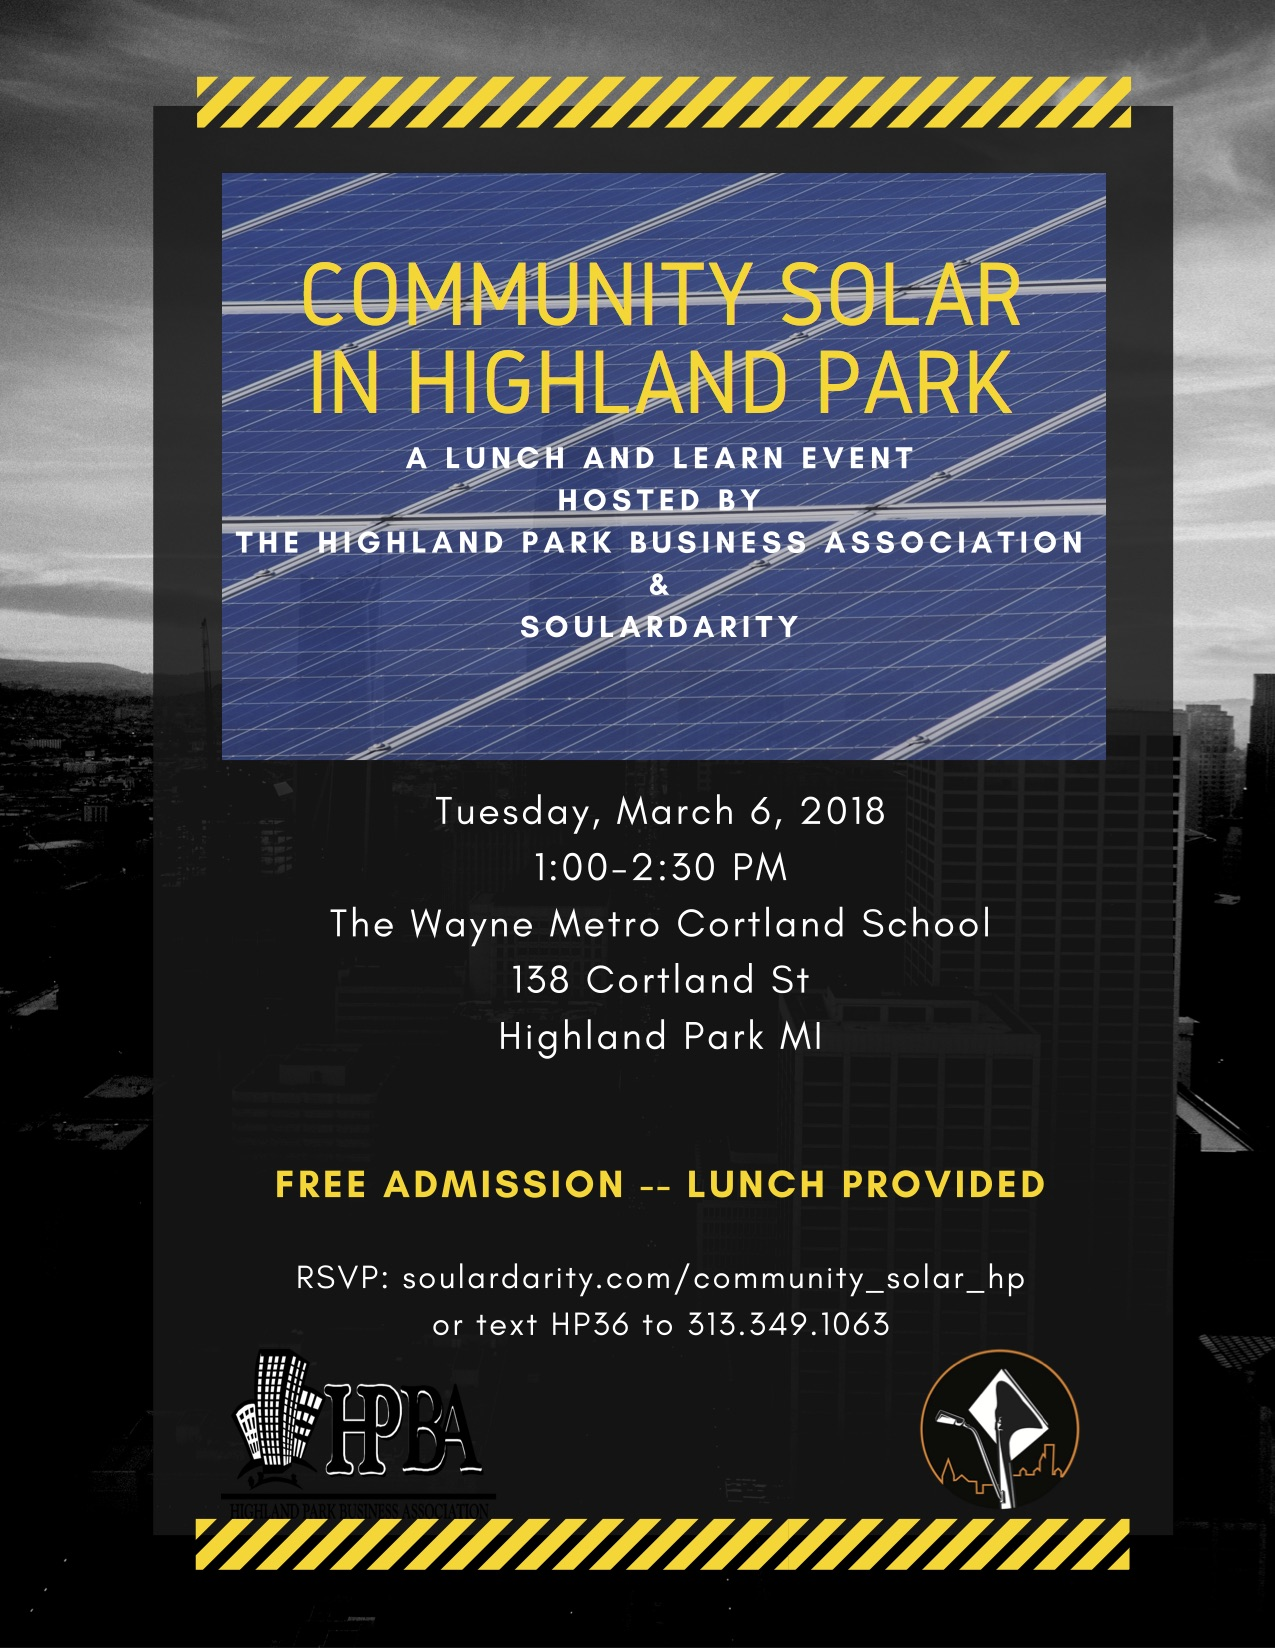 community_solar_event_flyer_(front).jpg